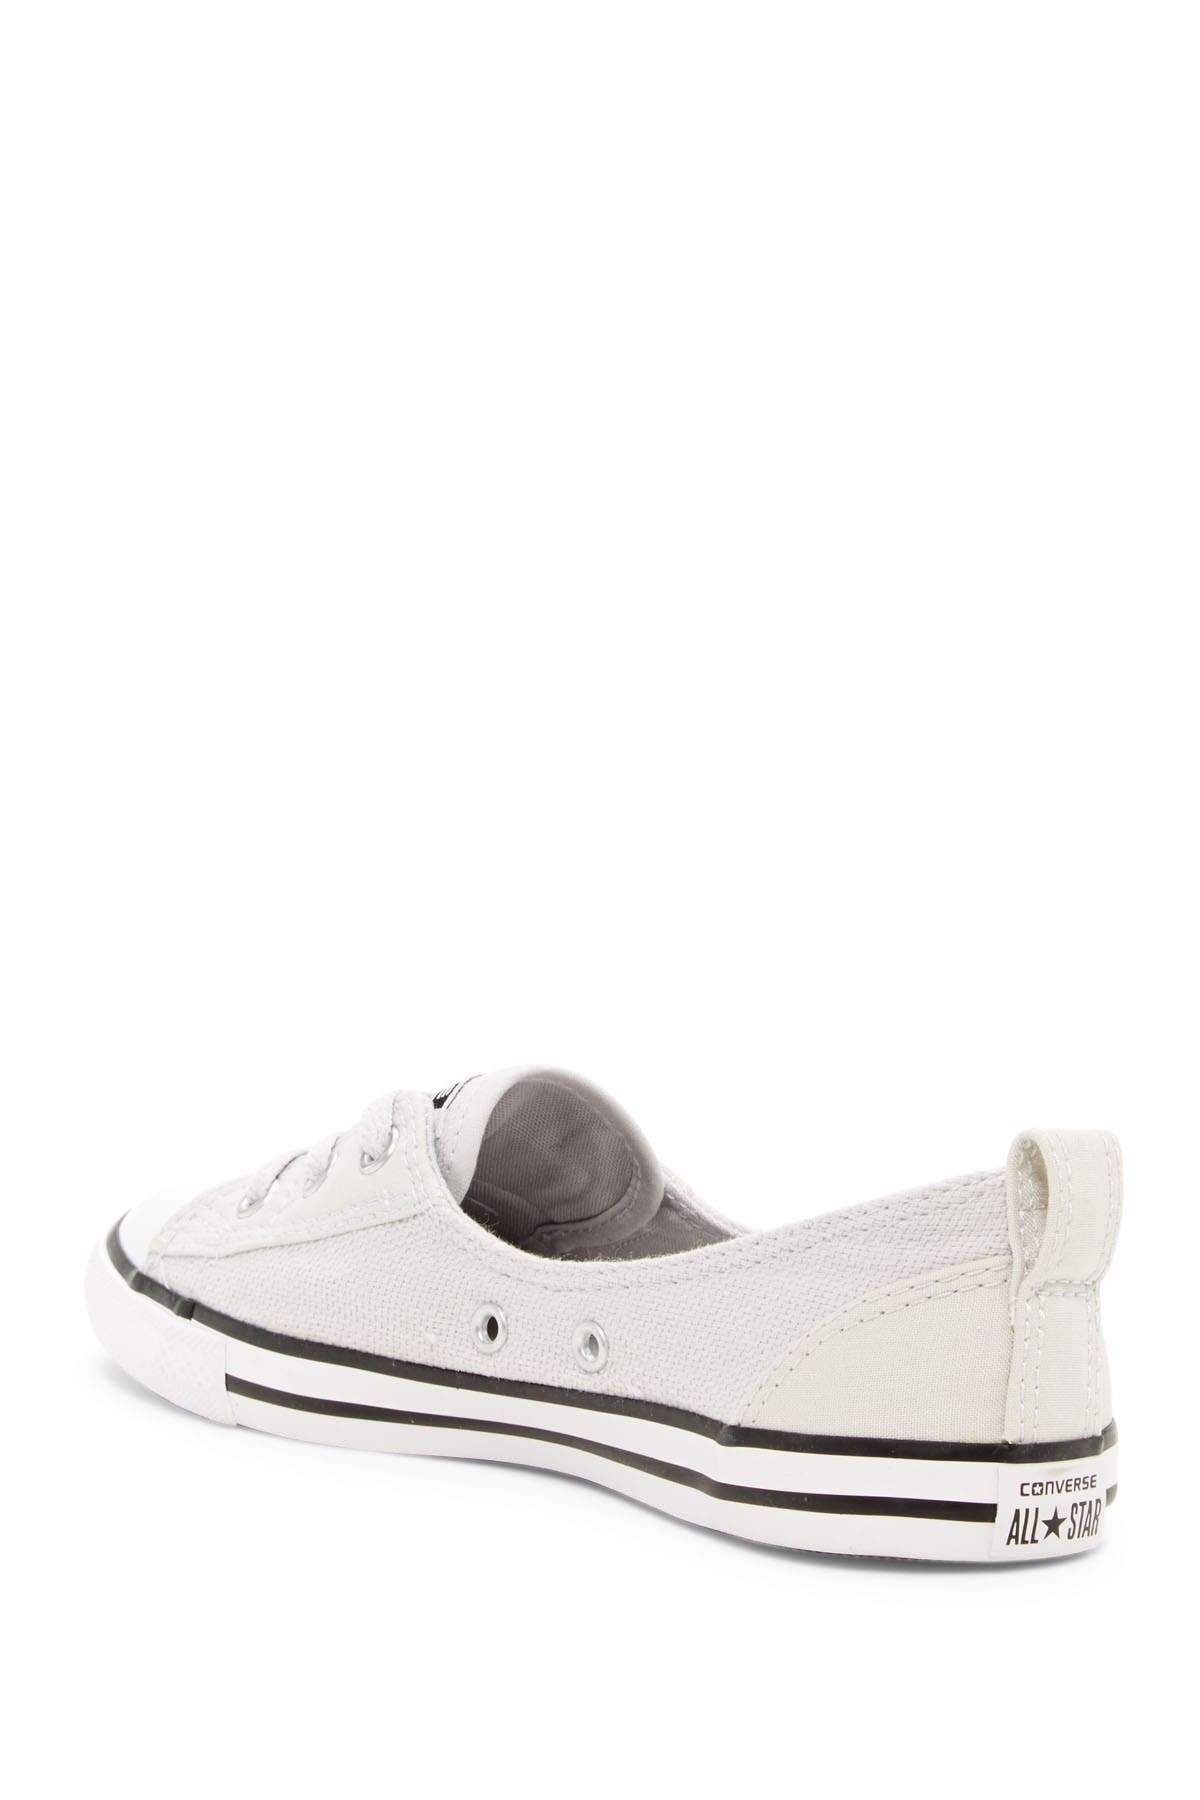 Image of Converse Chuck Taylor All Star Ballet Canvas Sneaker